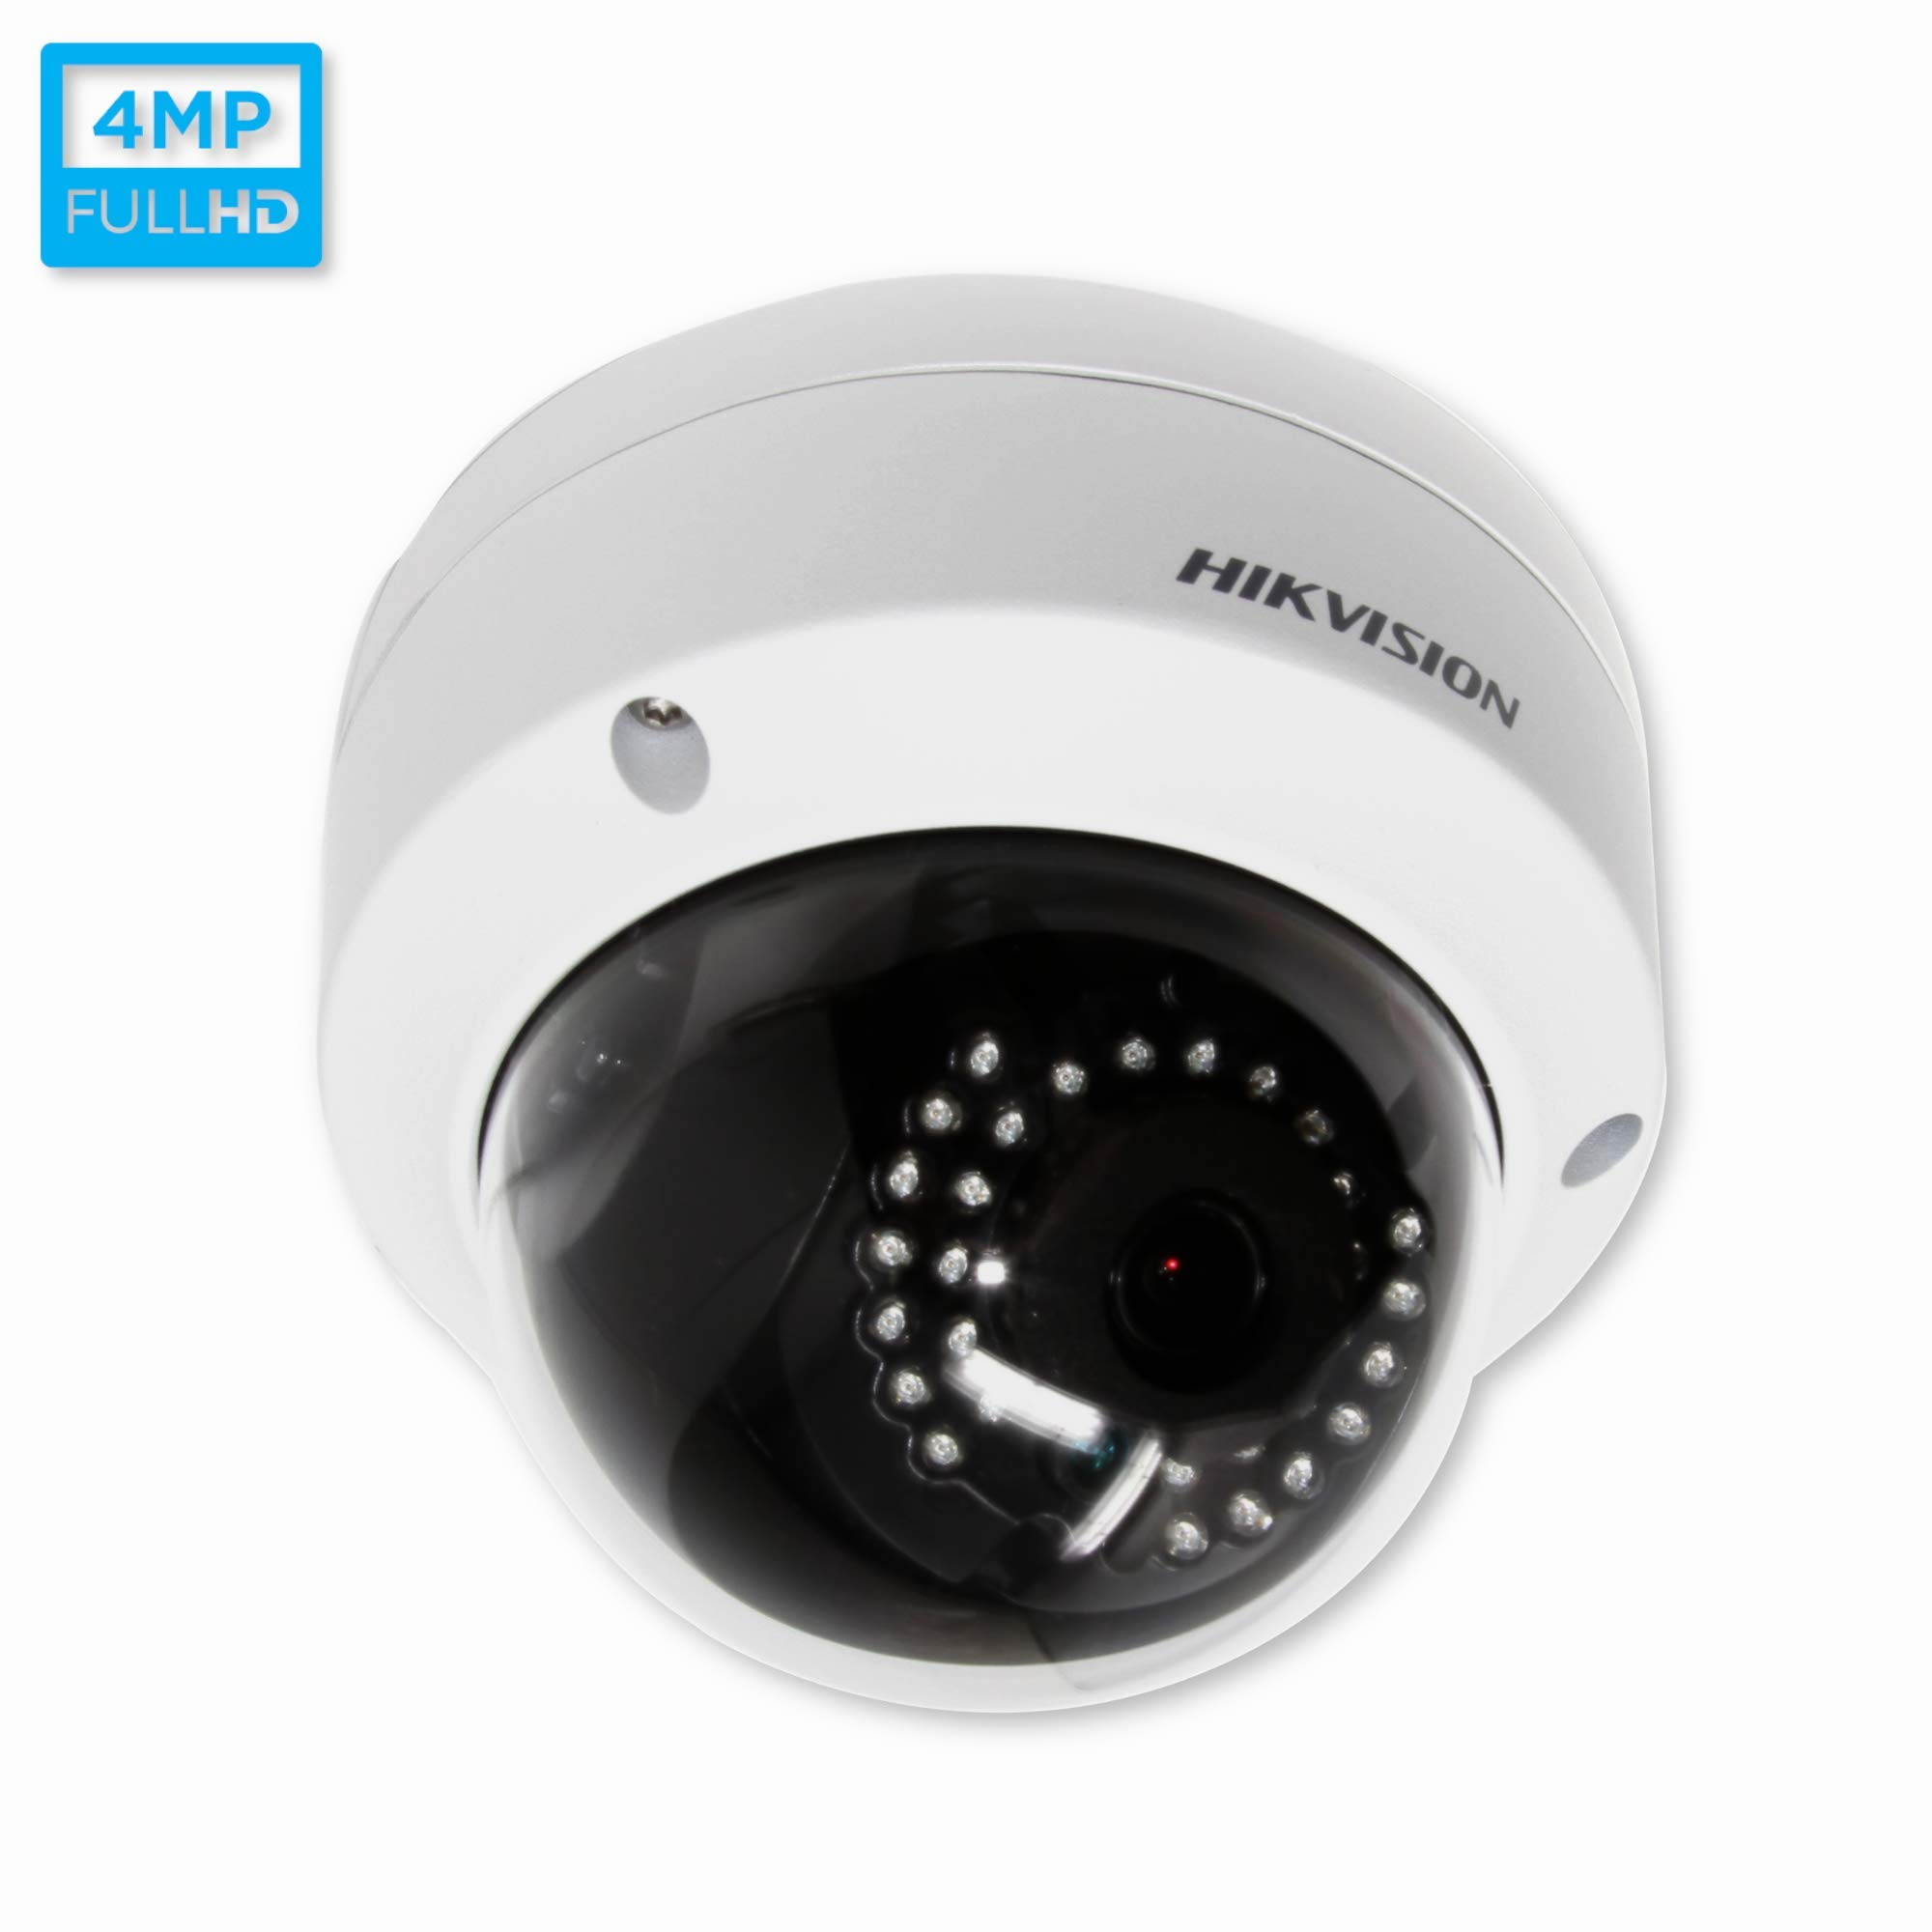 HIKVISION DS-2CD2142FWD-I 4MP WDR Fixed HD Network IP Dome 2.8mm Lens